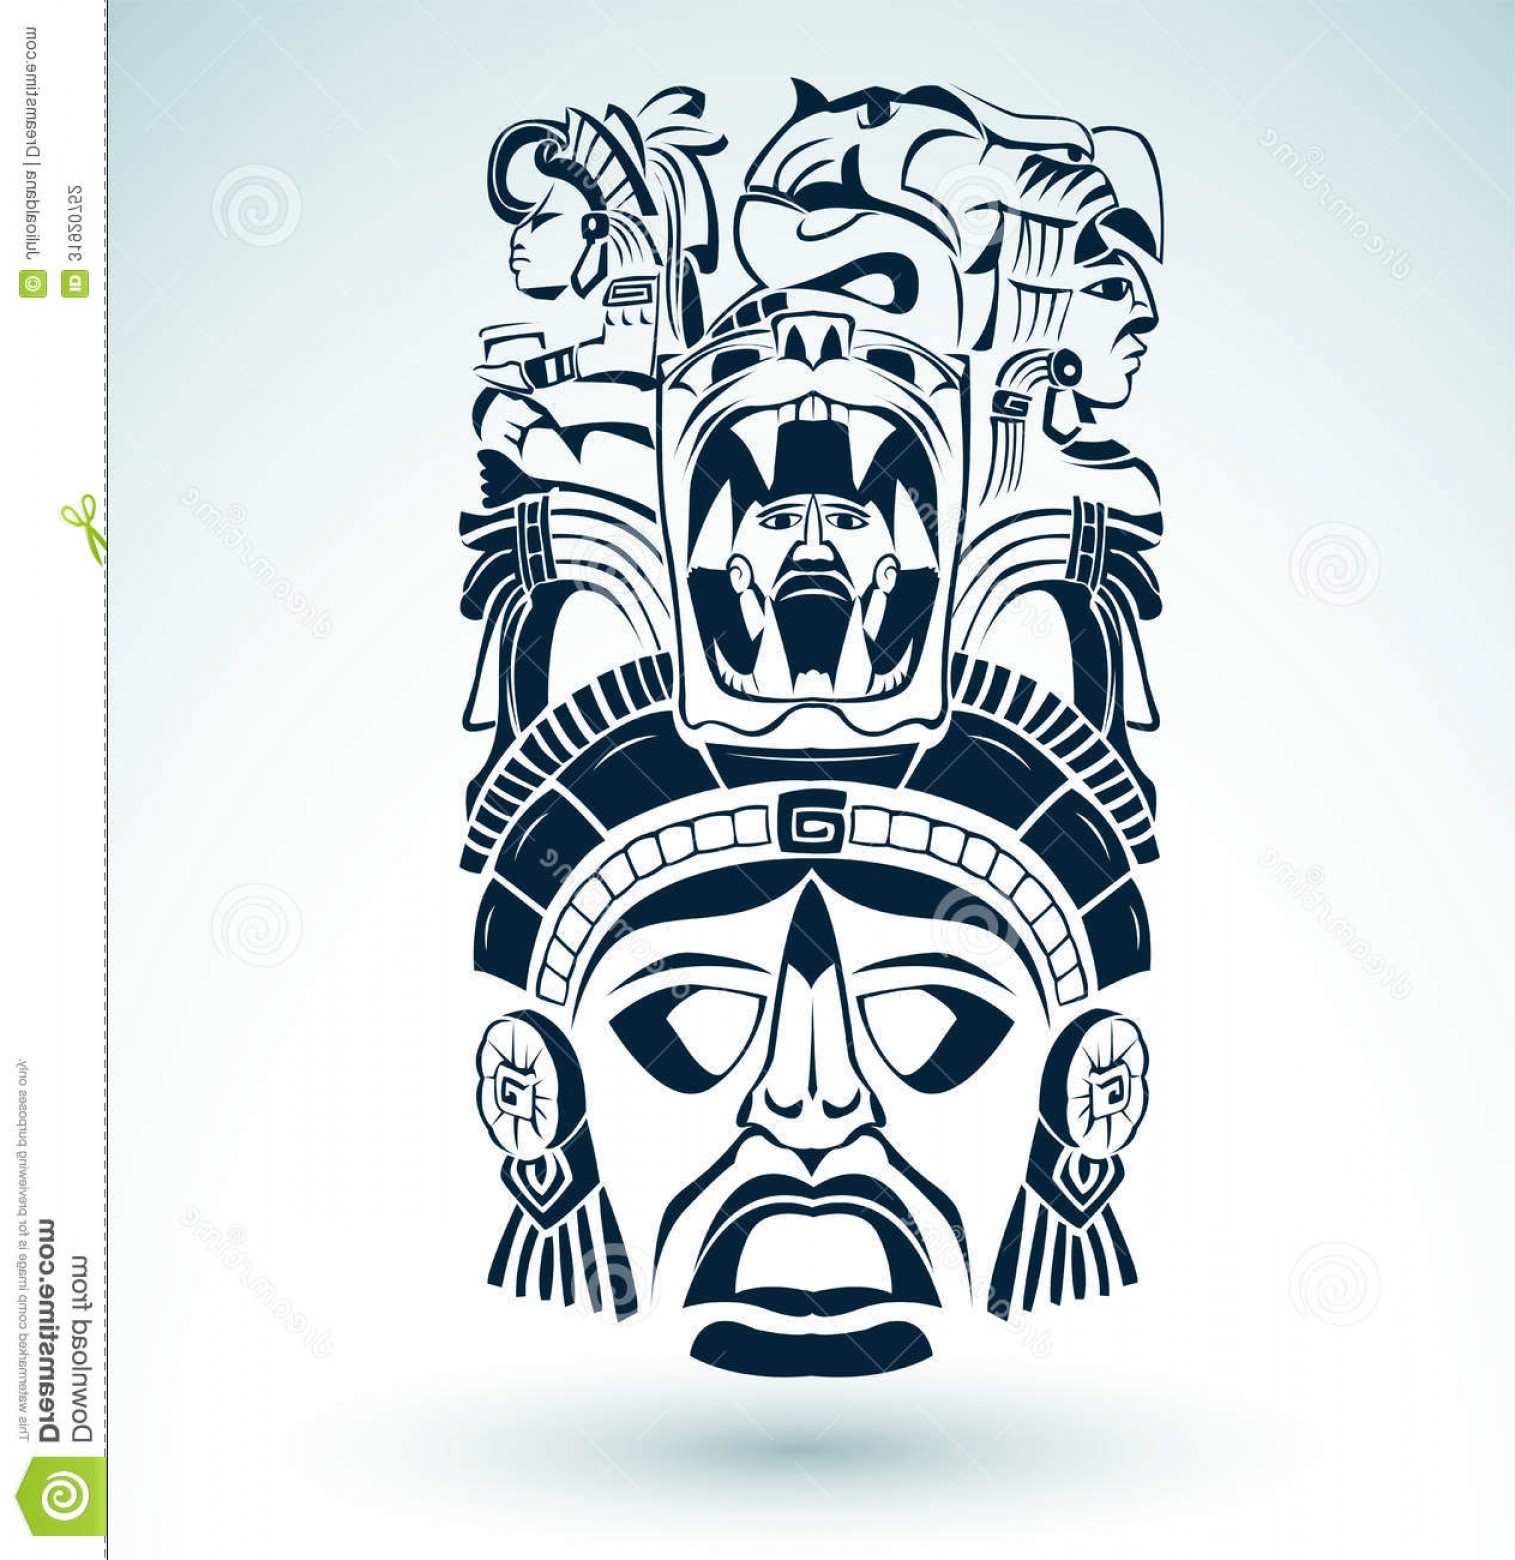 Mayan Vector: Stock Photography Vector Mask Mexican Mayan Aztec Motifs Symbol Easy Edit Image